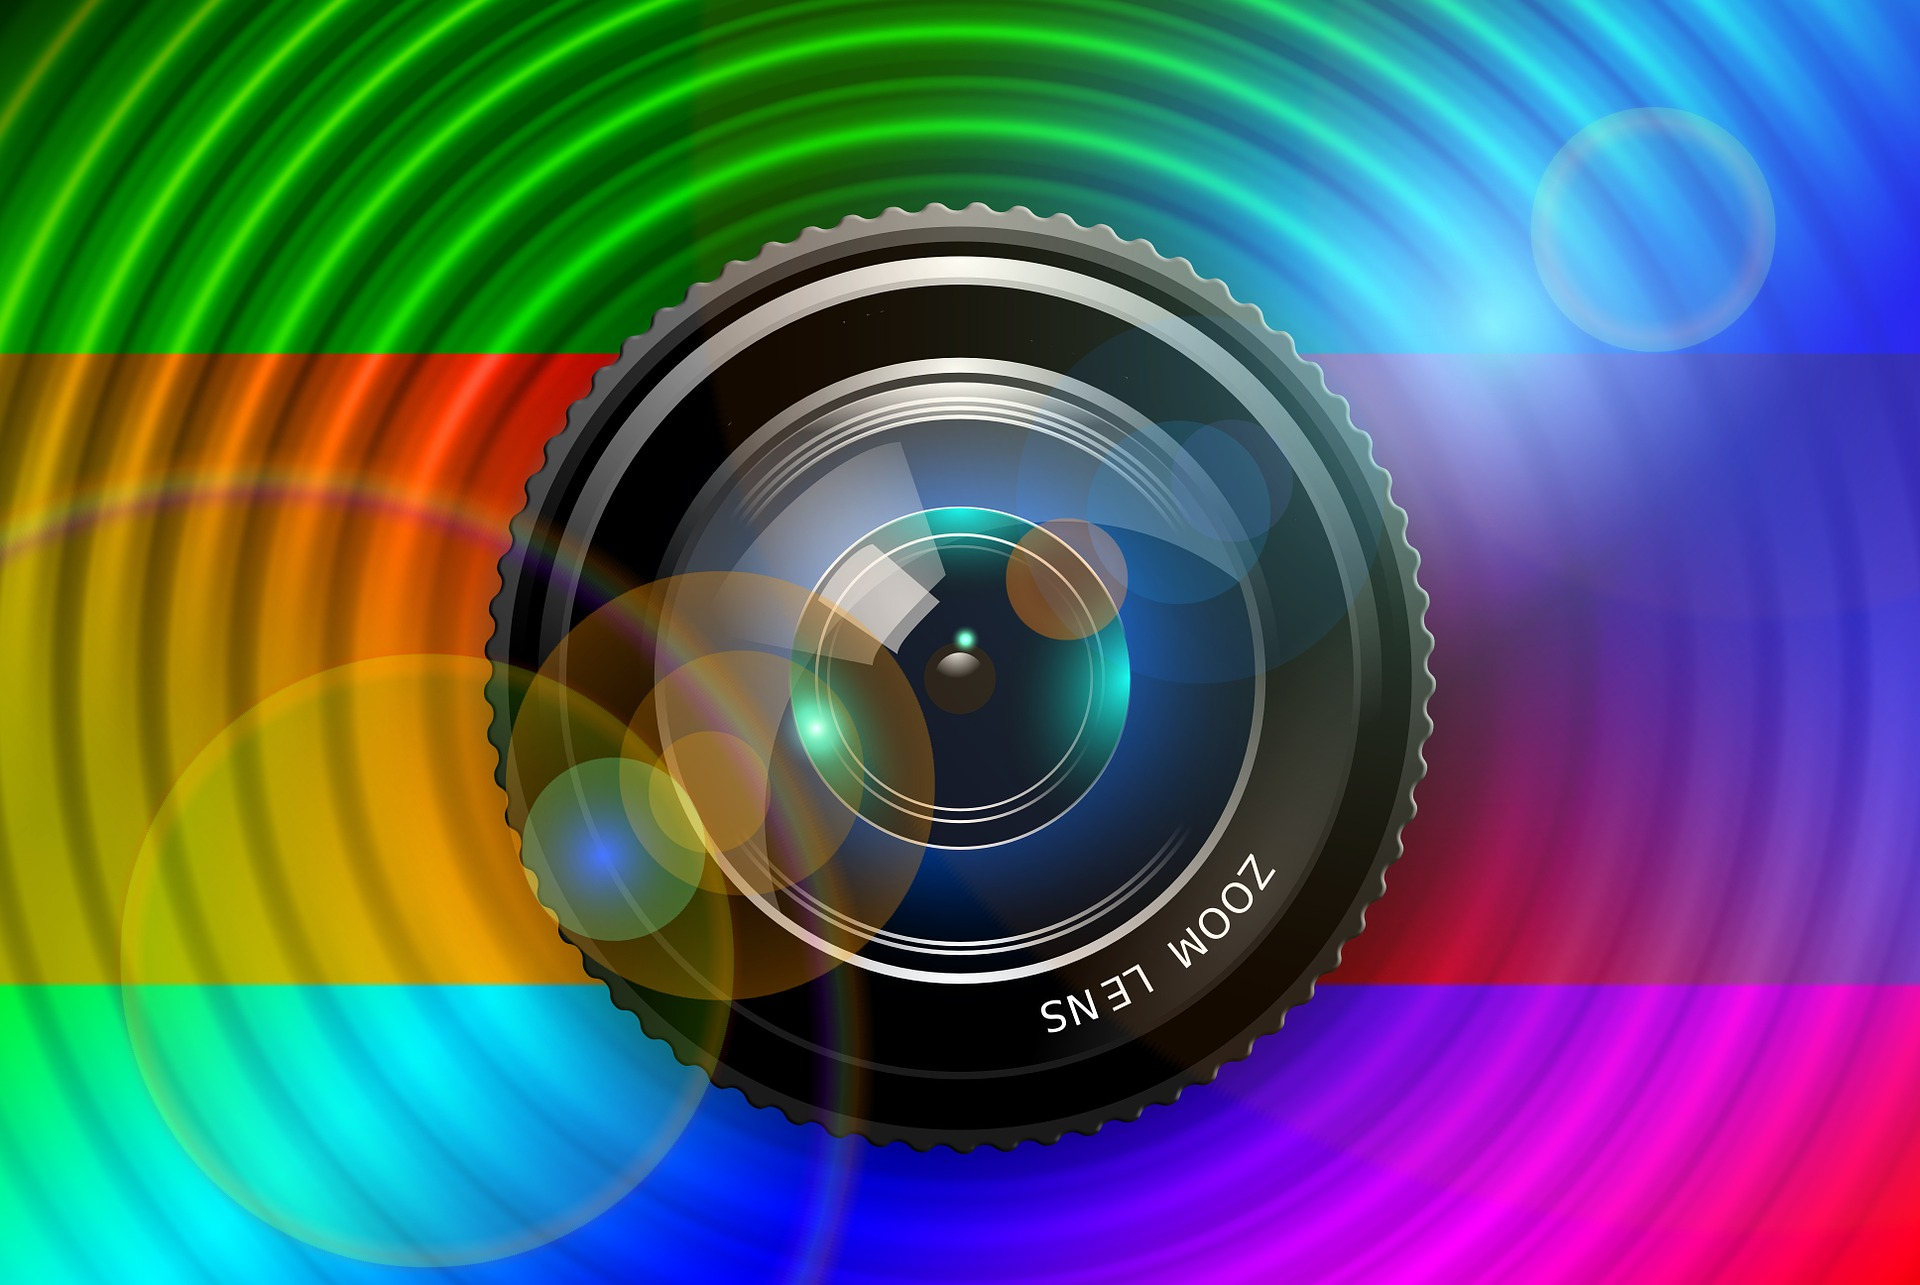 give you 20 high quality 100% Royalty Free Stock Photo's of the subject(s) of your choice